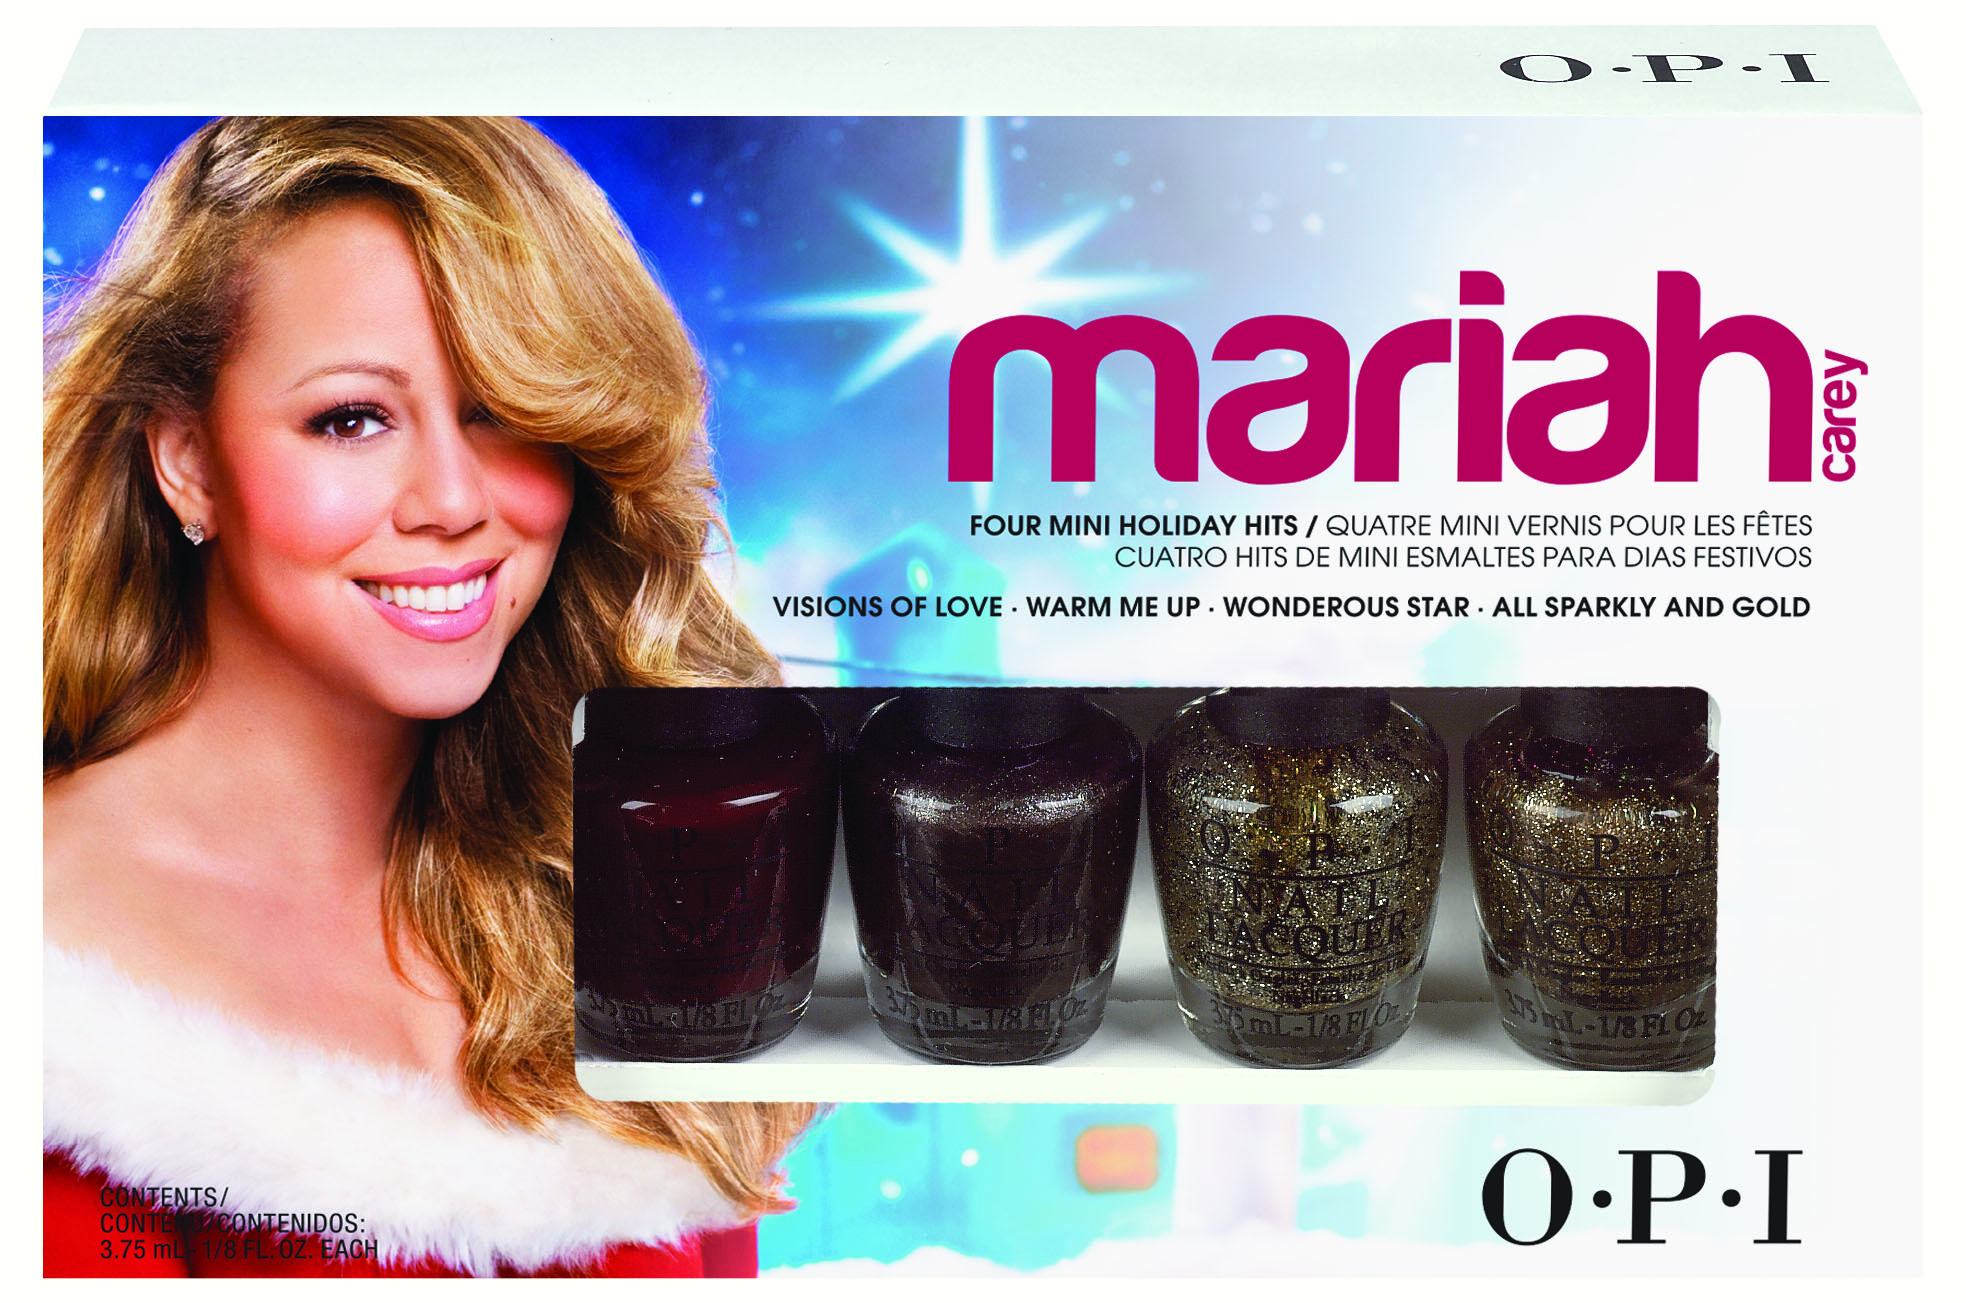 Opi Launches 4 New Limited Edition Mariah Carey Holiday Gift